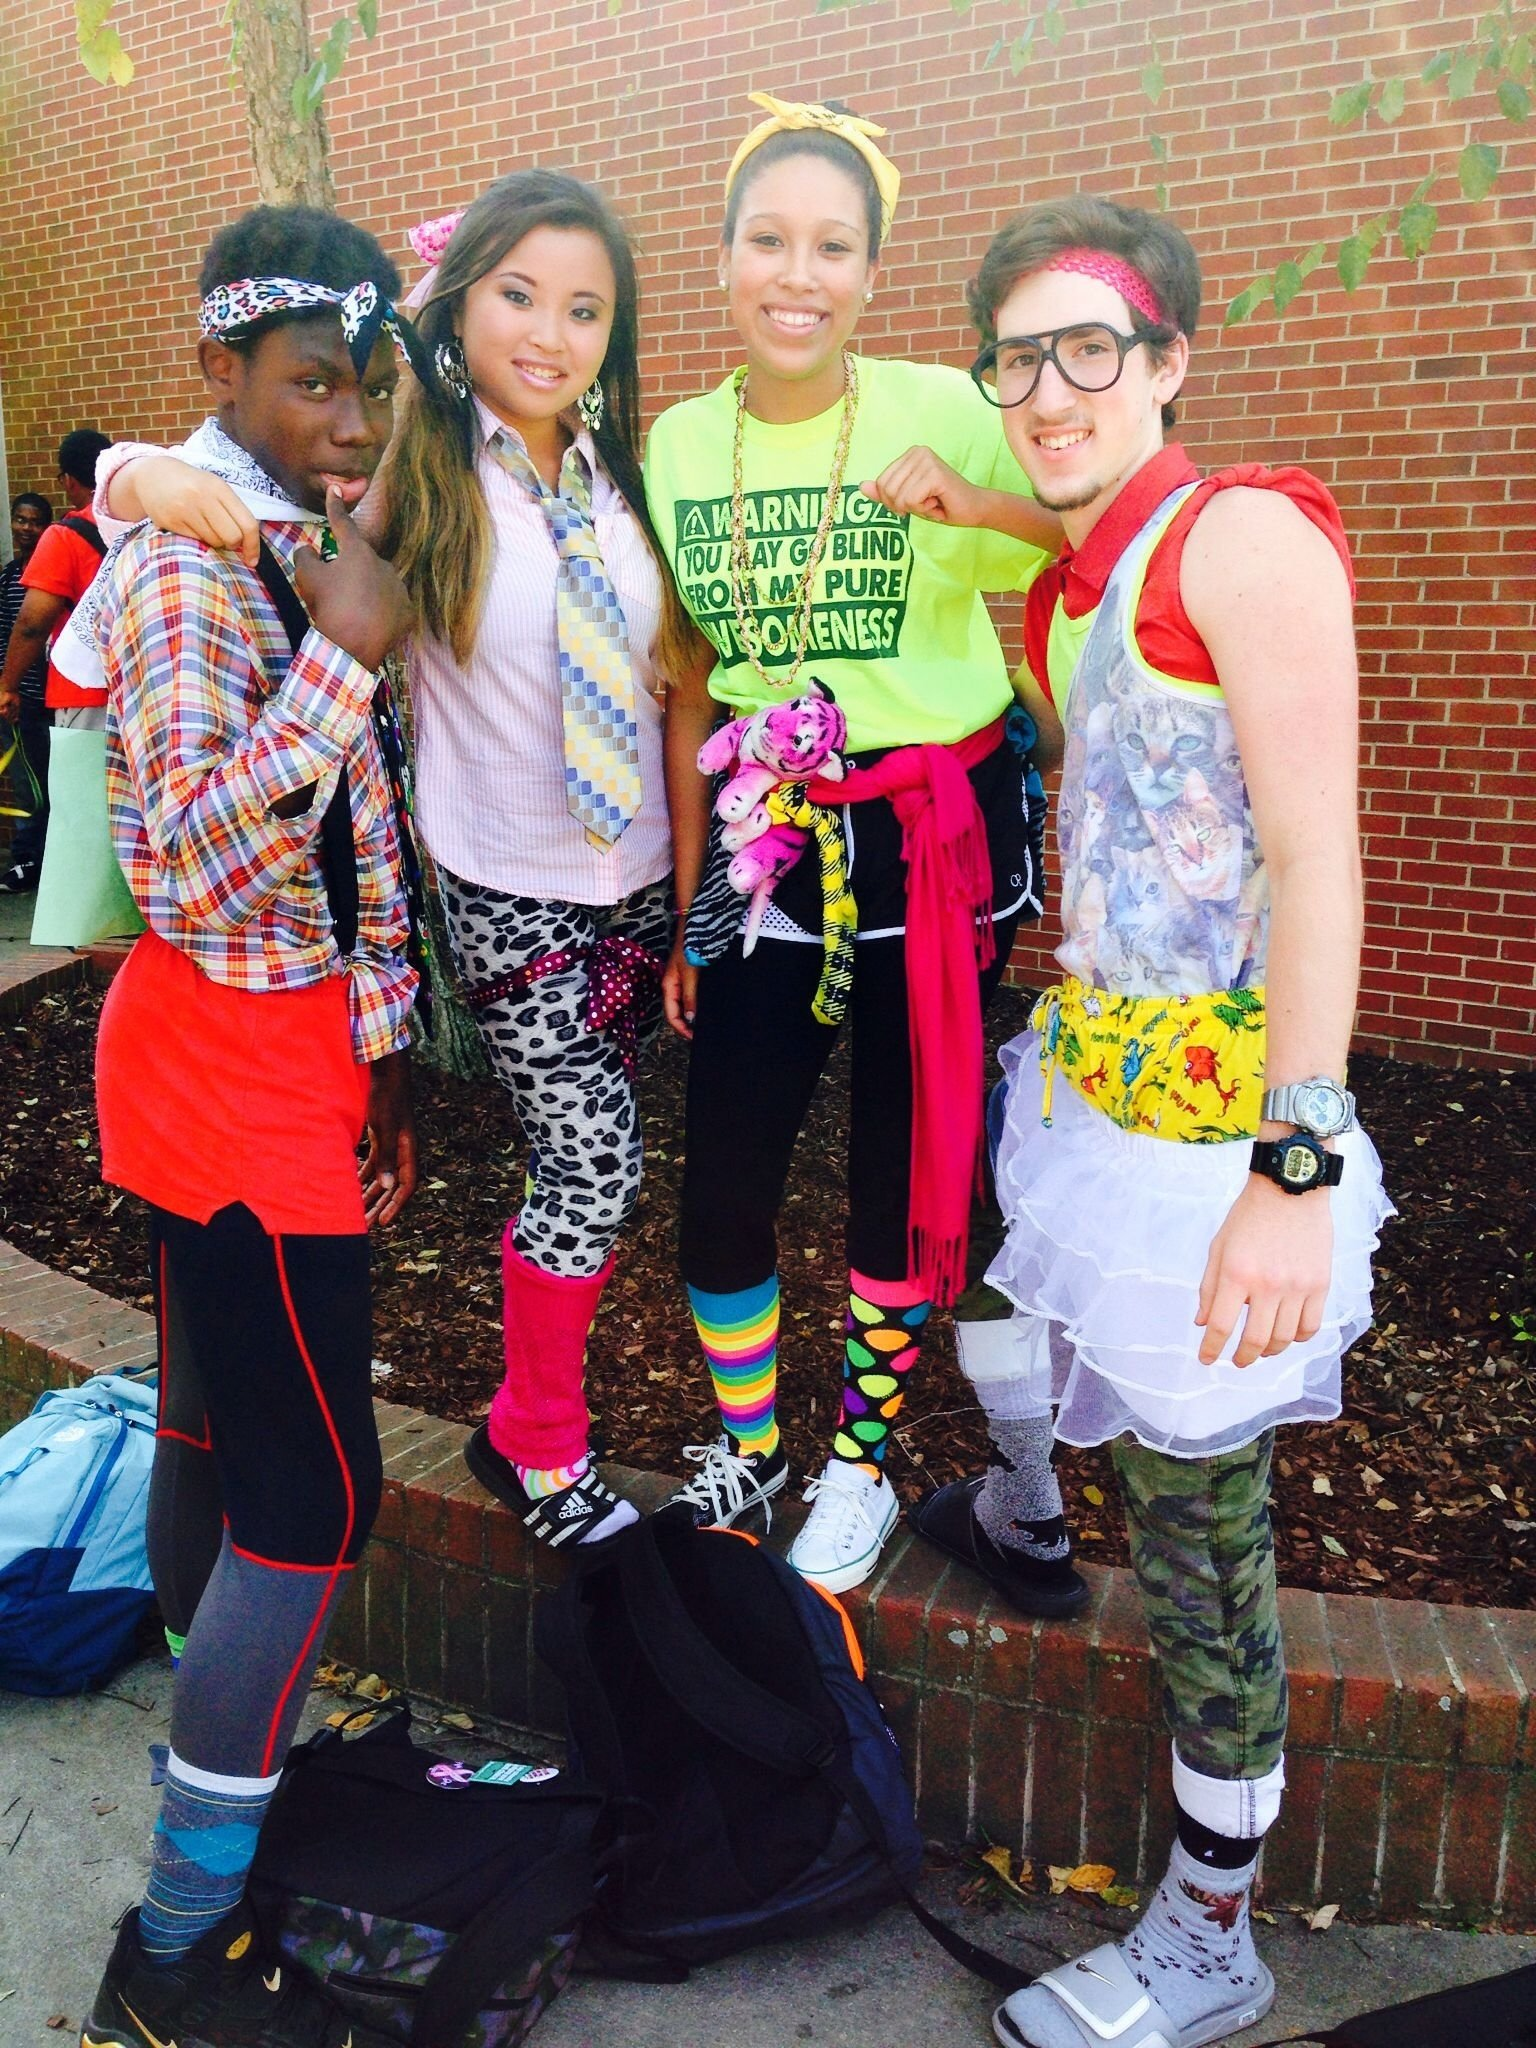 10 Attractive Ideas For Wacky Tacky Day no body does wacky tacky day like garner garner iamatrojan 1 2020